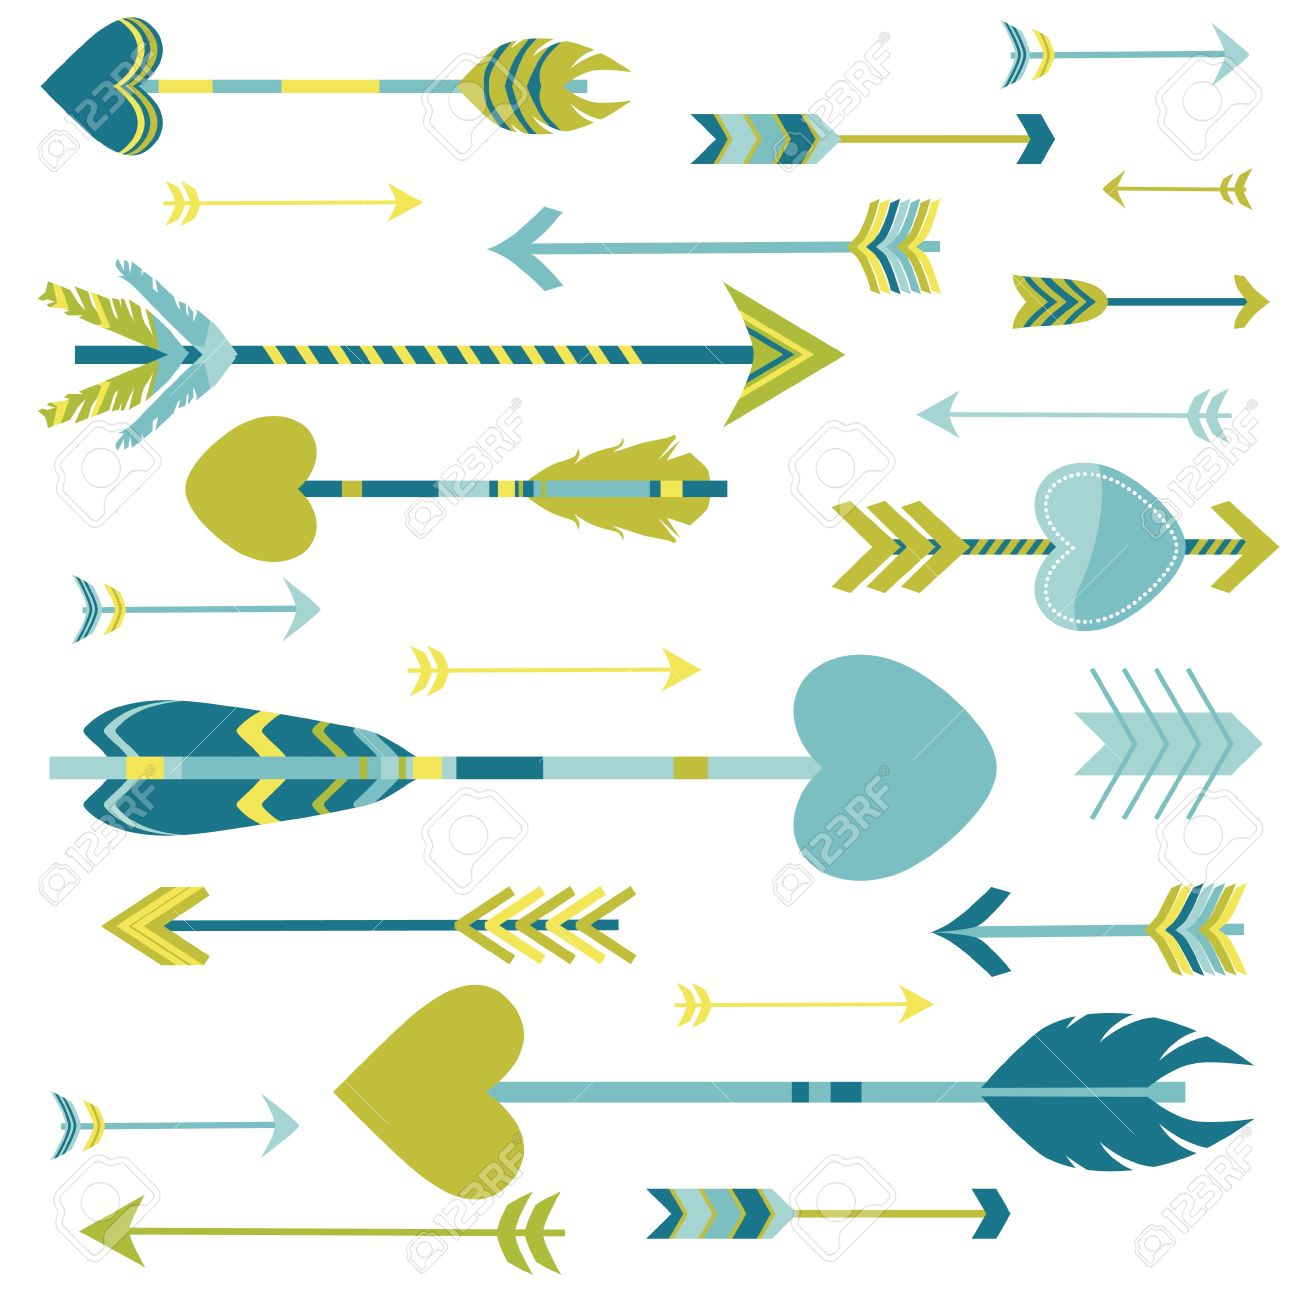 Arrow feather images clipart picture freeuse 5,933 Arrow Feathers Stock Illustrations, Cliparts And Royalty ... picture freeuse